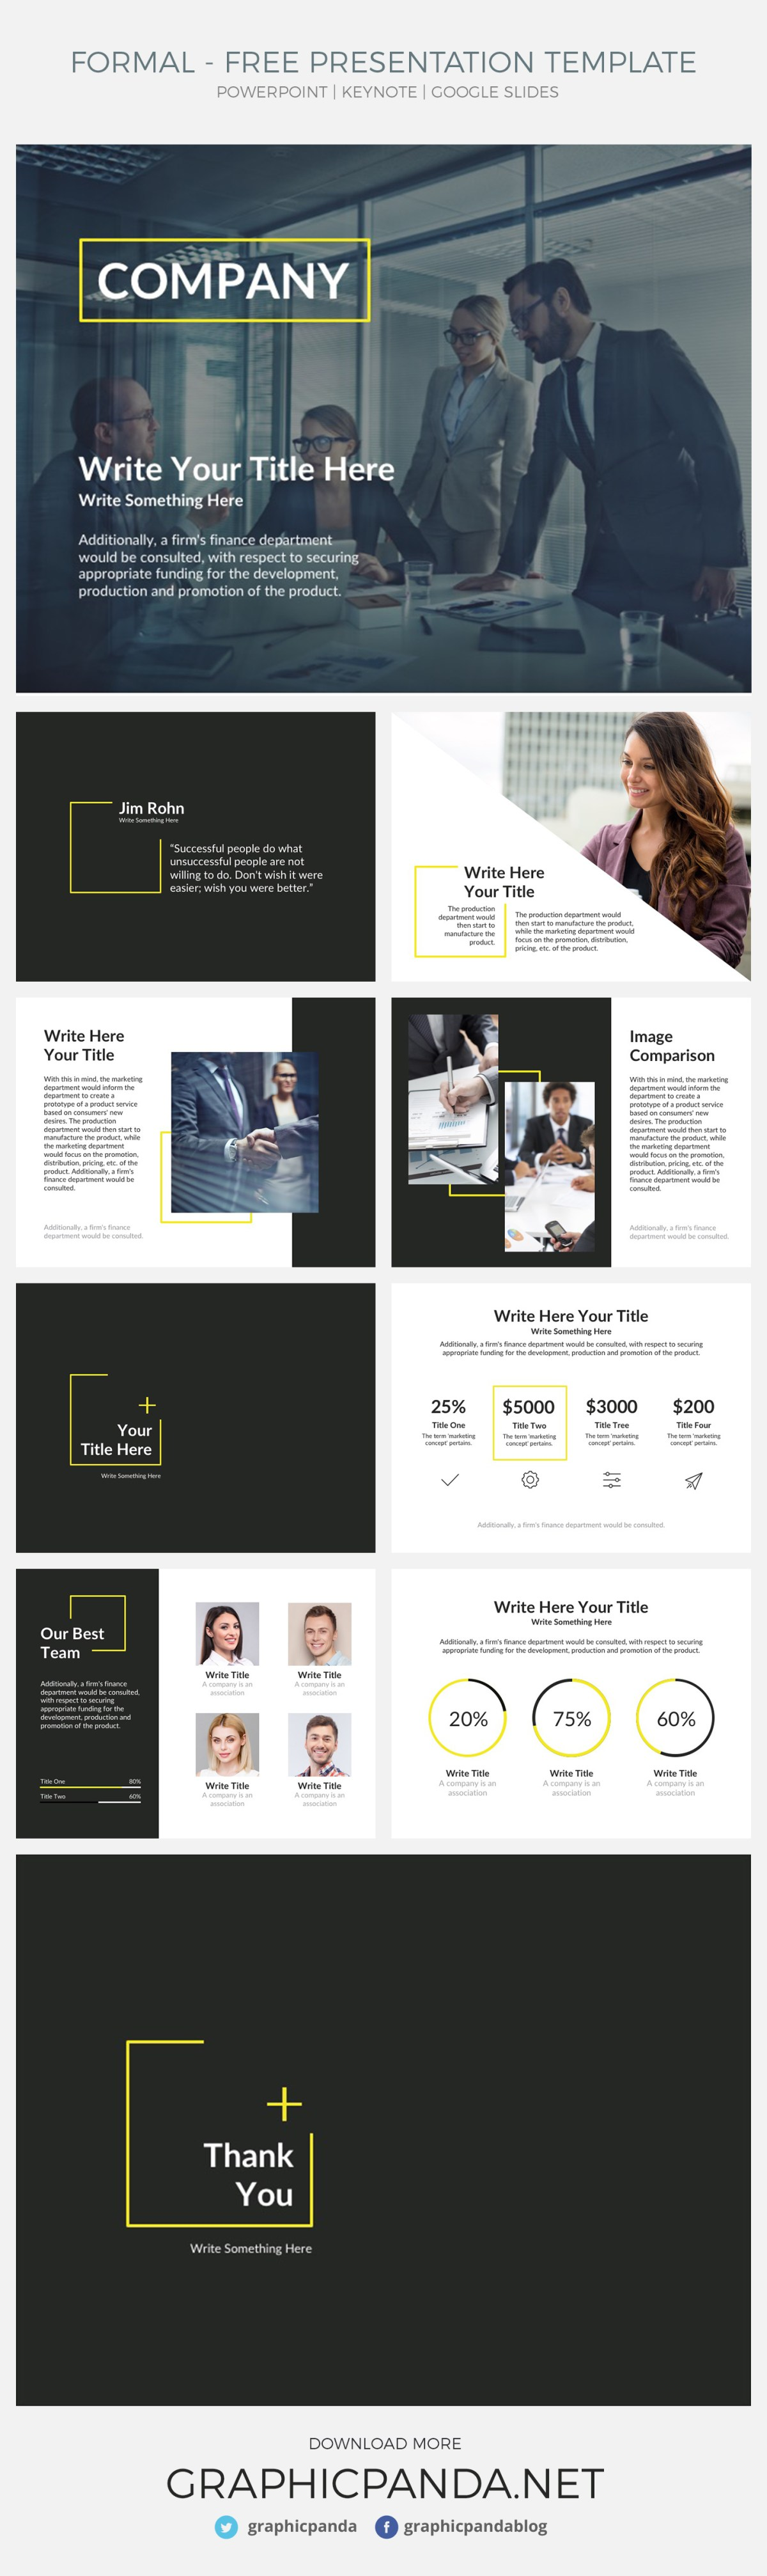 Formal Free PowerPoint, Keynote and Free Google Slides theme